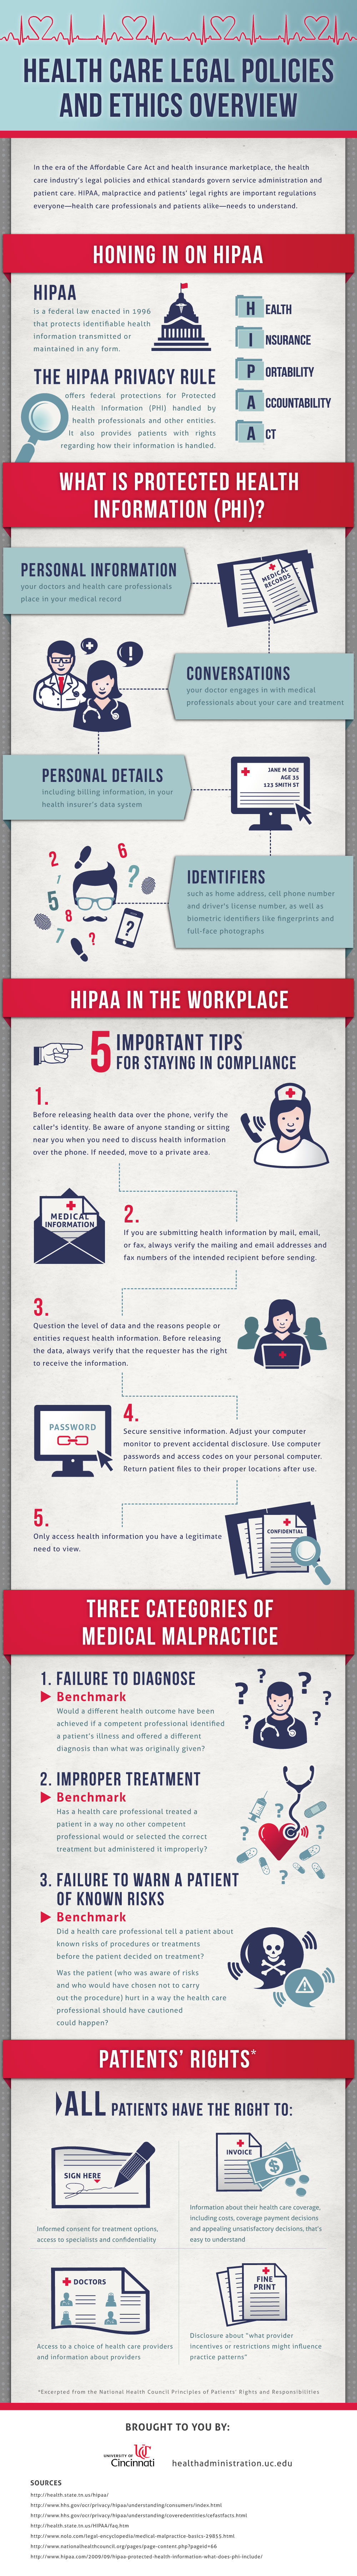 Healthcare Legal Policies Infographic